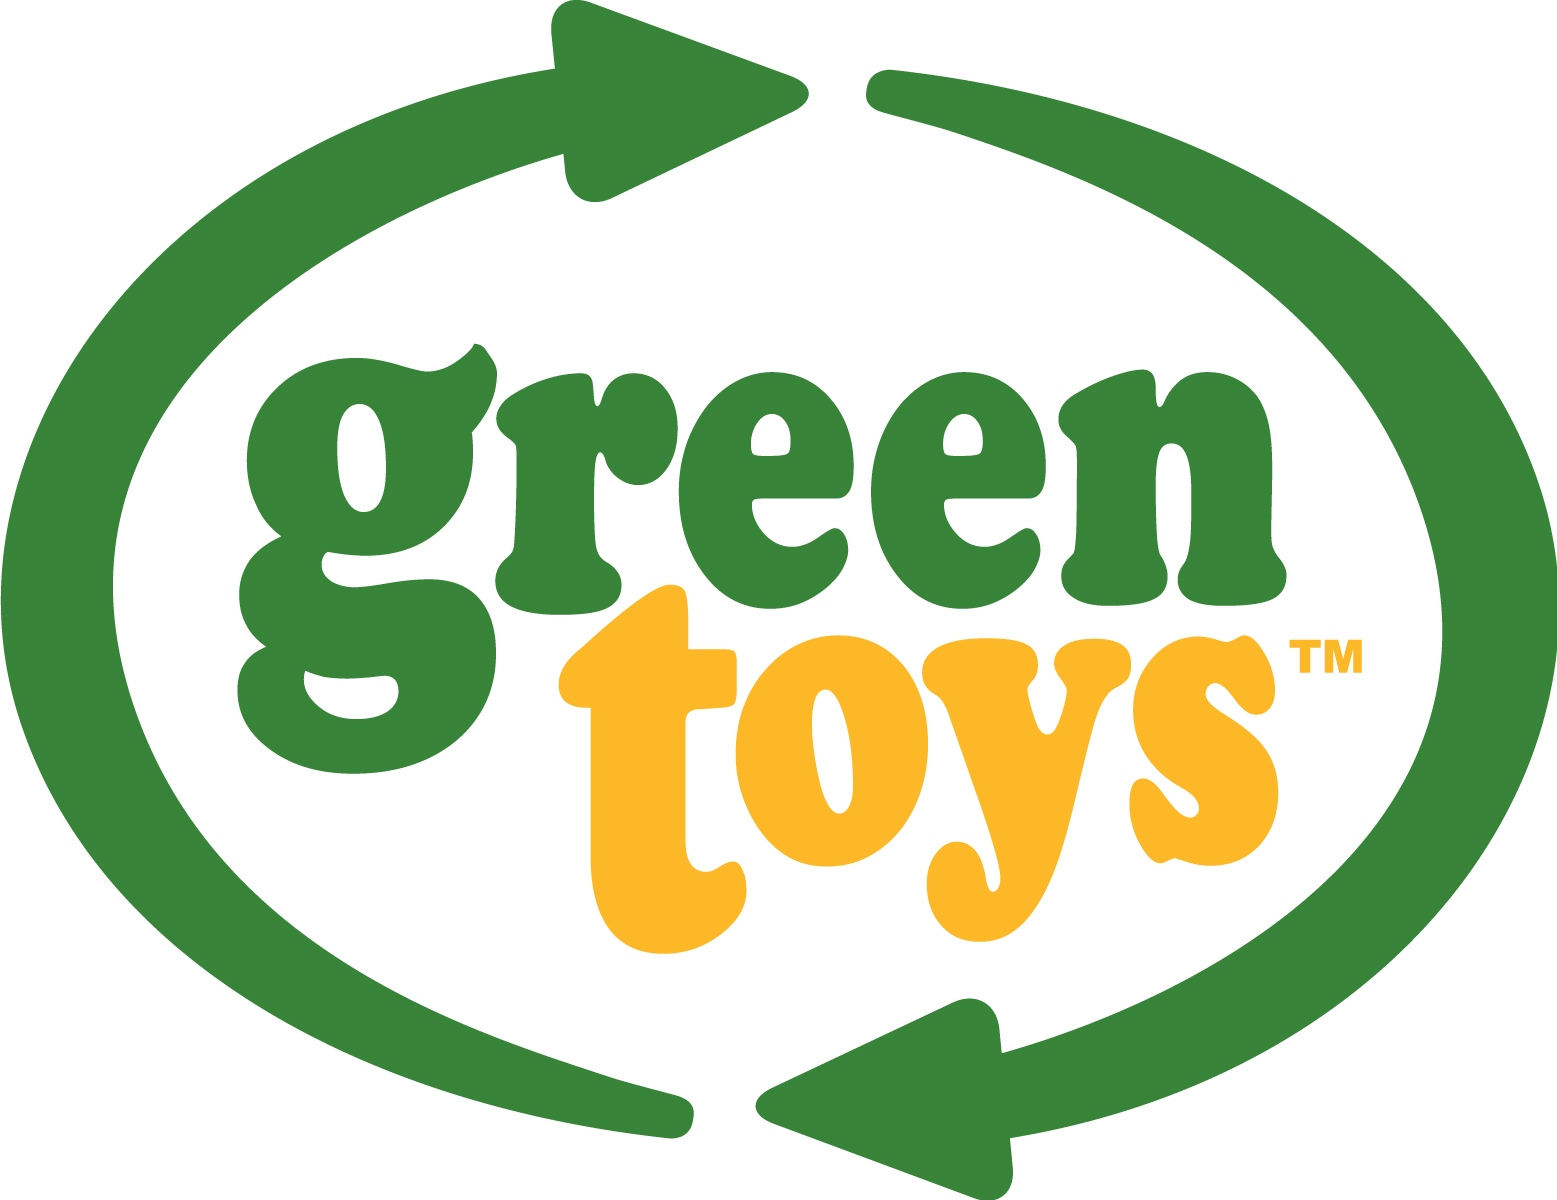 GreenToysLogo-cropped (1).jpg